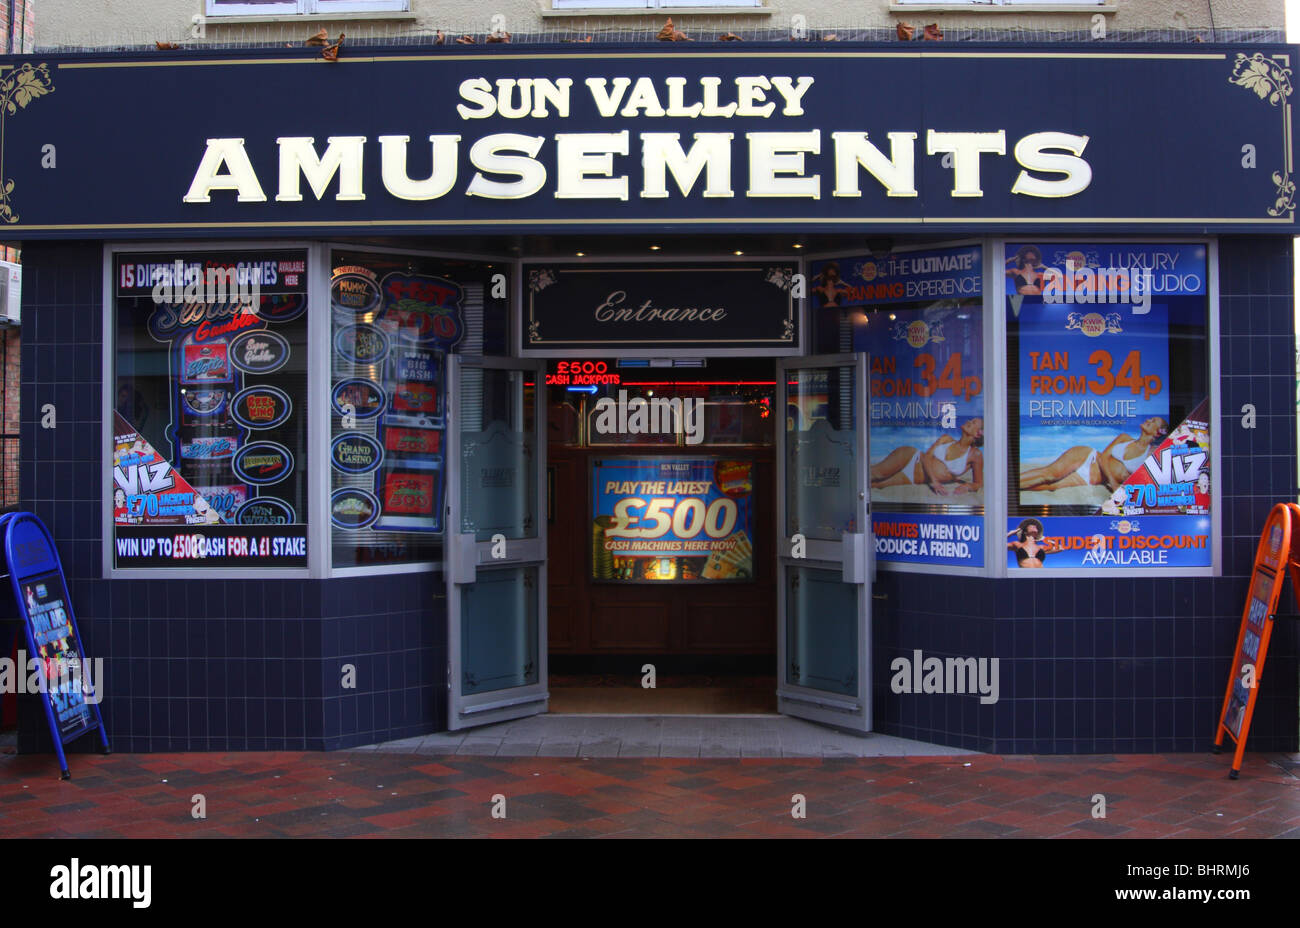 A Sun Valley amusement arcade in a U.K. city. - Stock Image